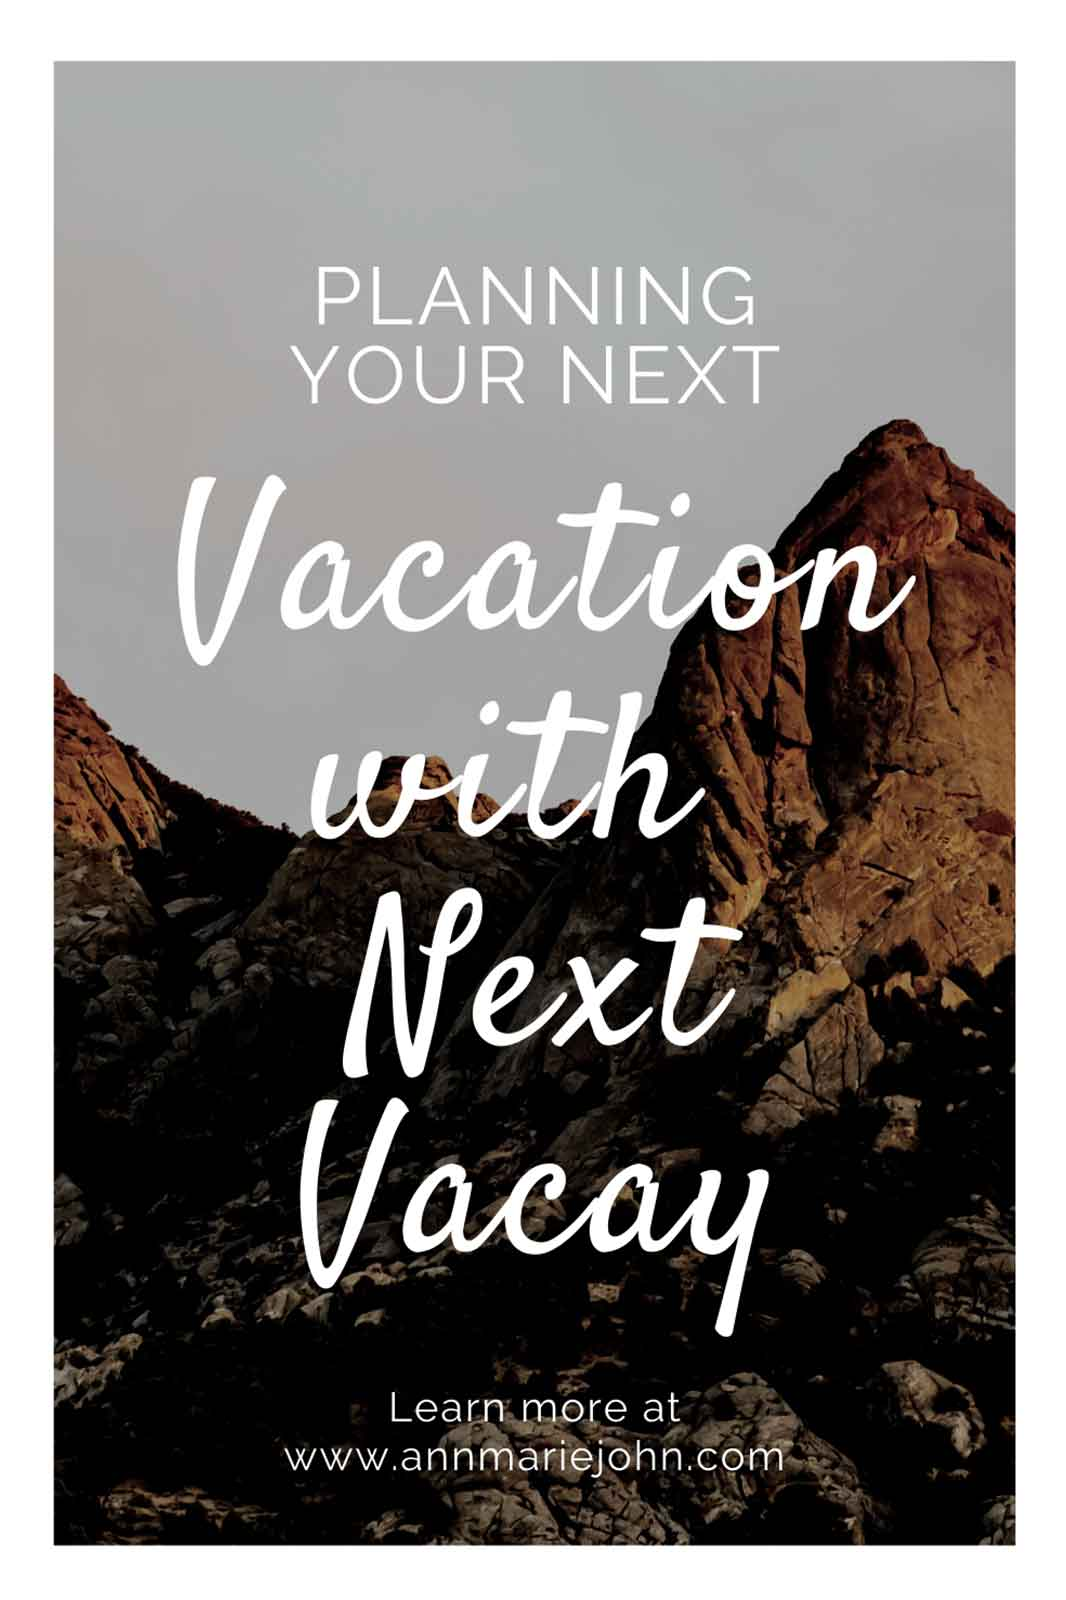 Planning Your Next Vacation with Next Vacay